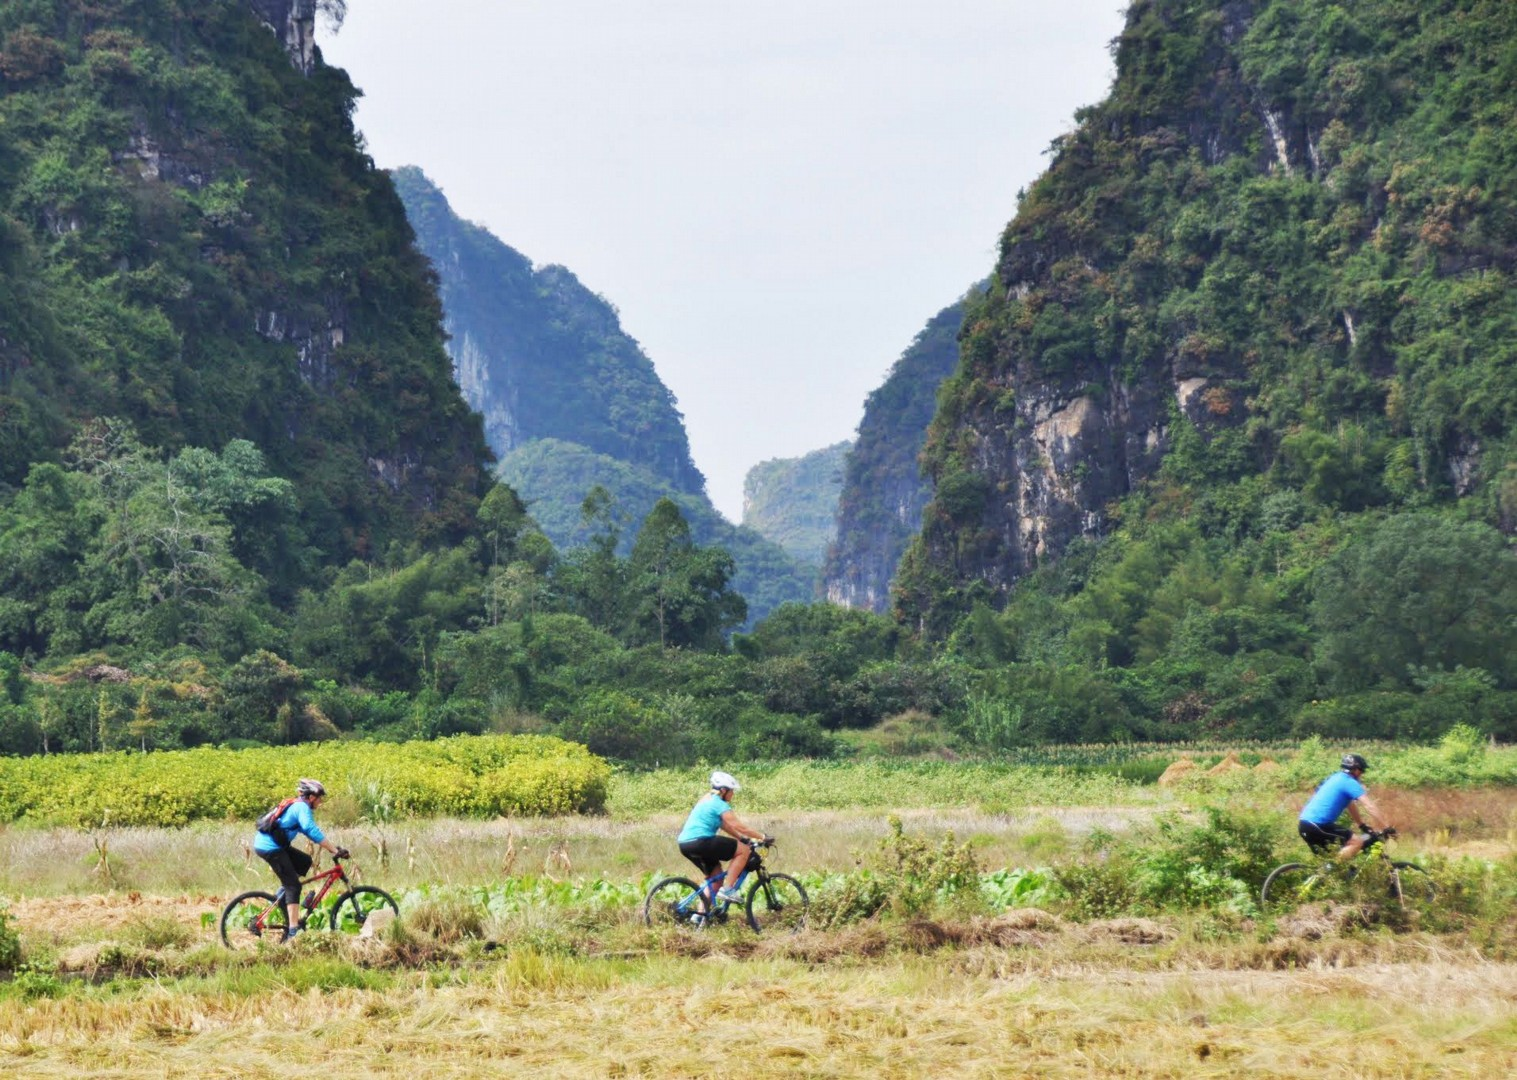 001-103.jpg - China - Guilin and Guangxi - Cycling Adventures